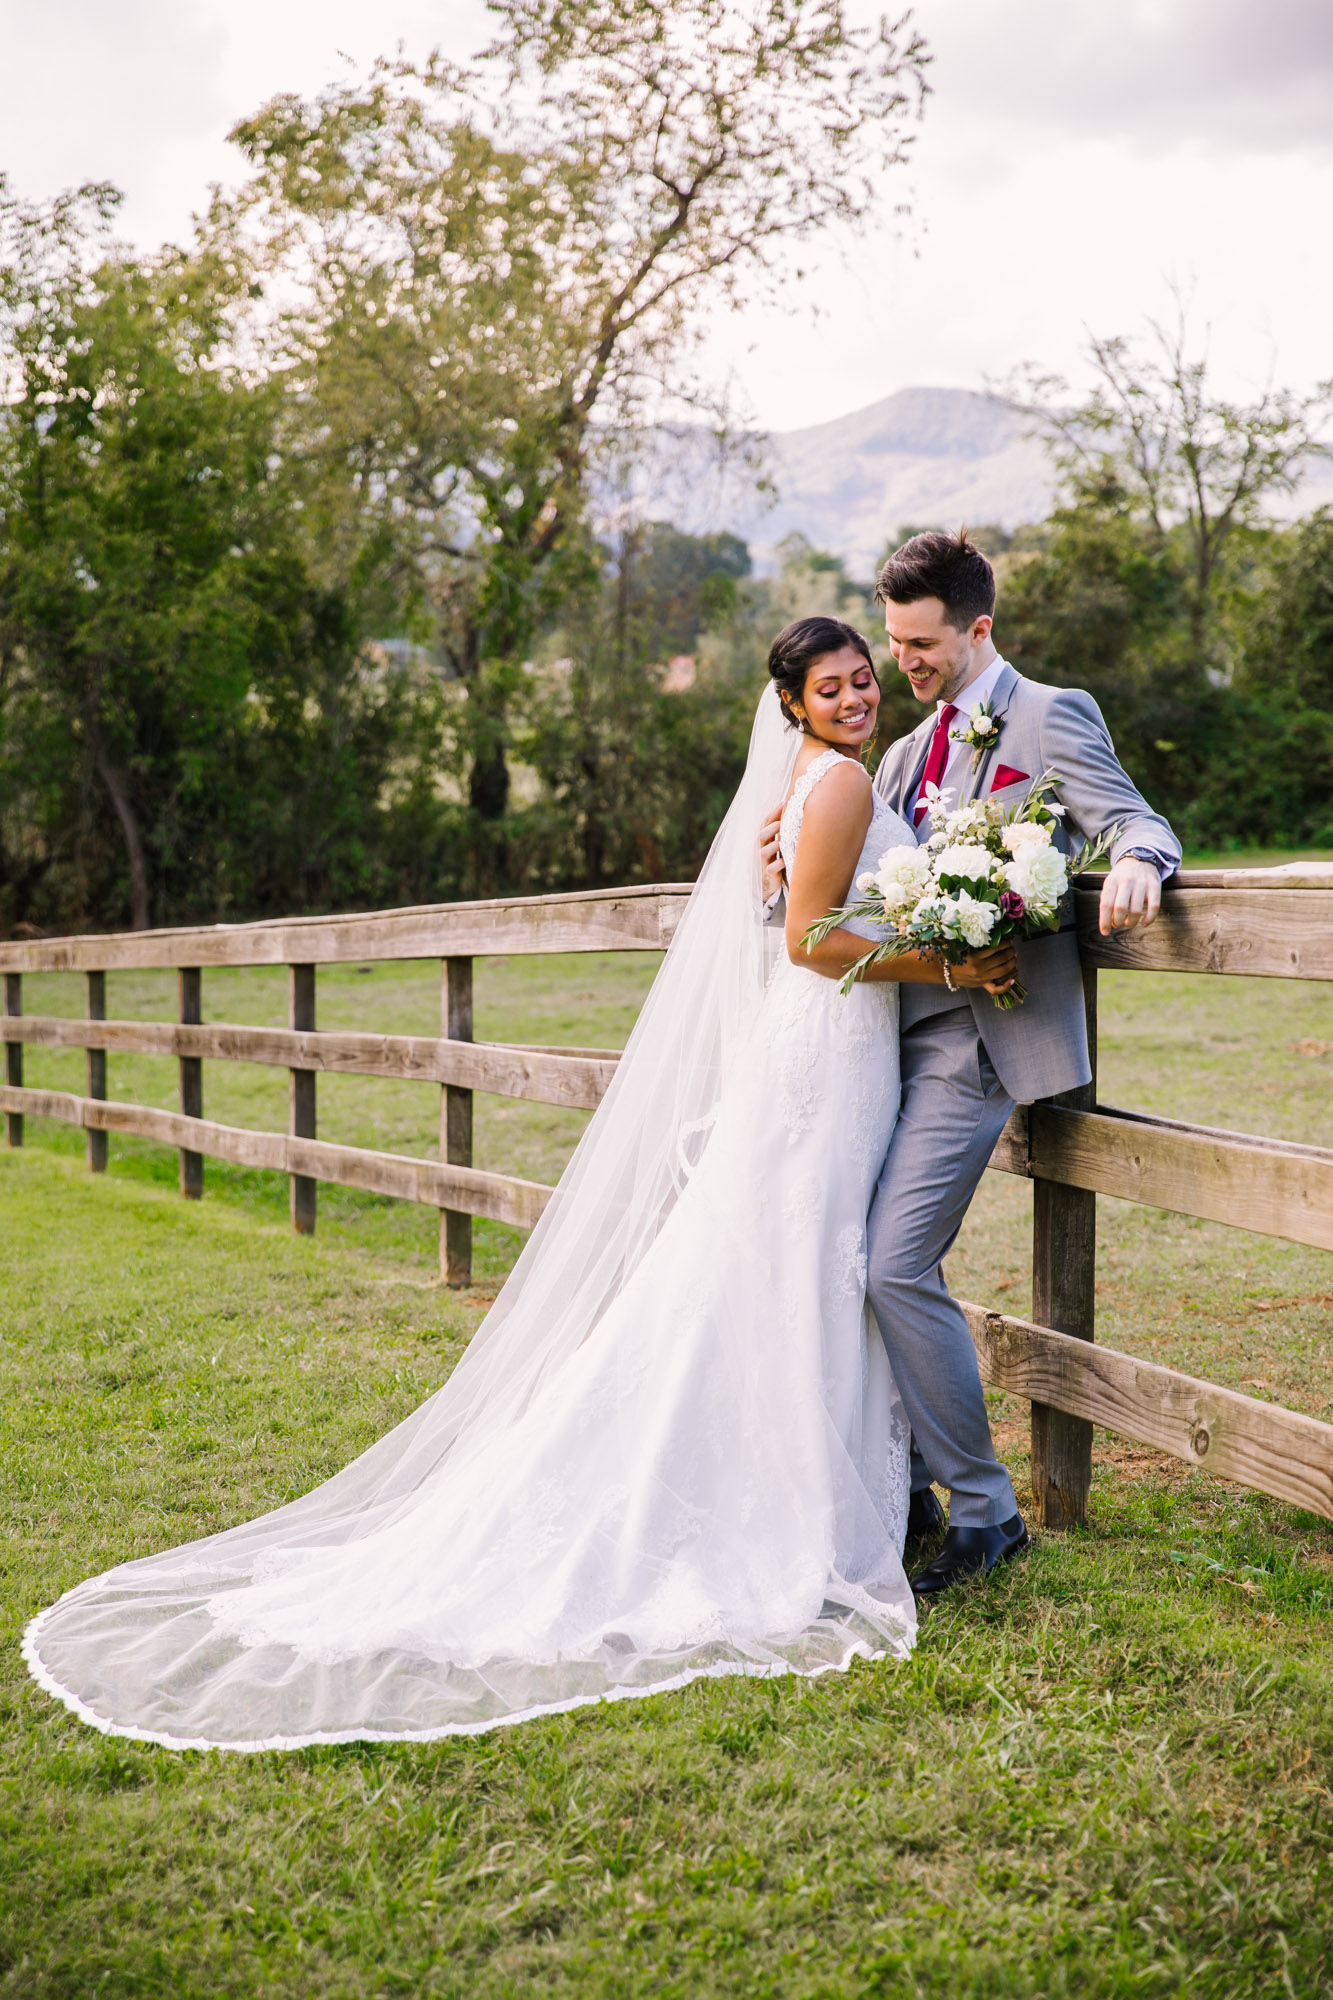 Waynesville NC Wedding Photography | Bride and Groom Portrait Full Body